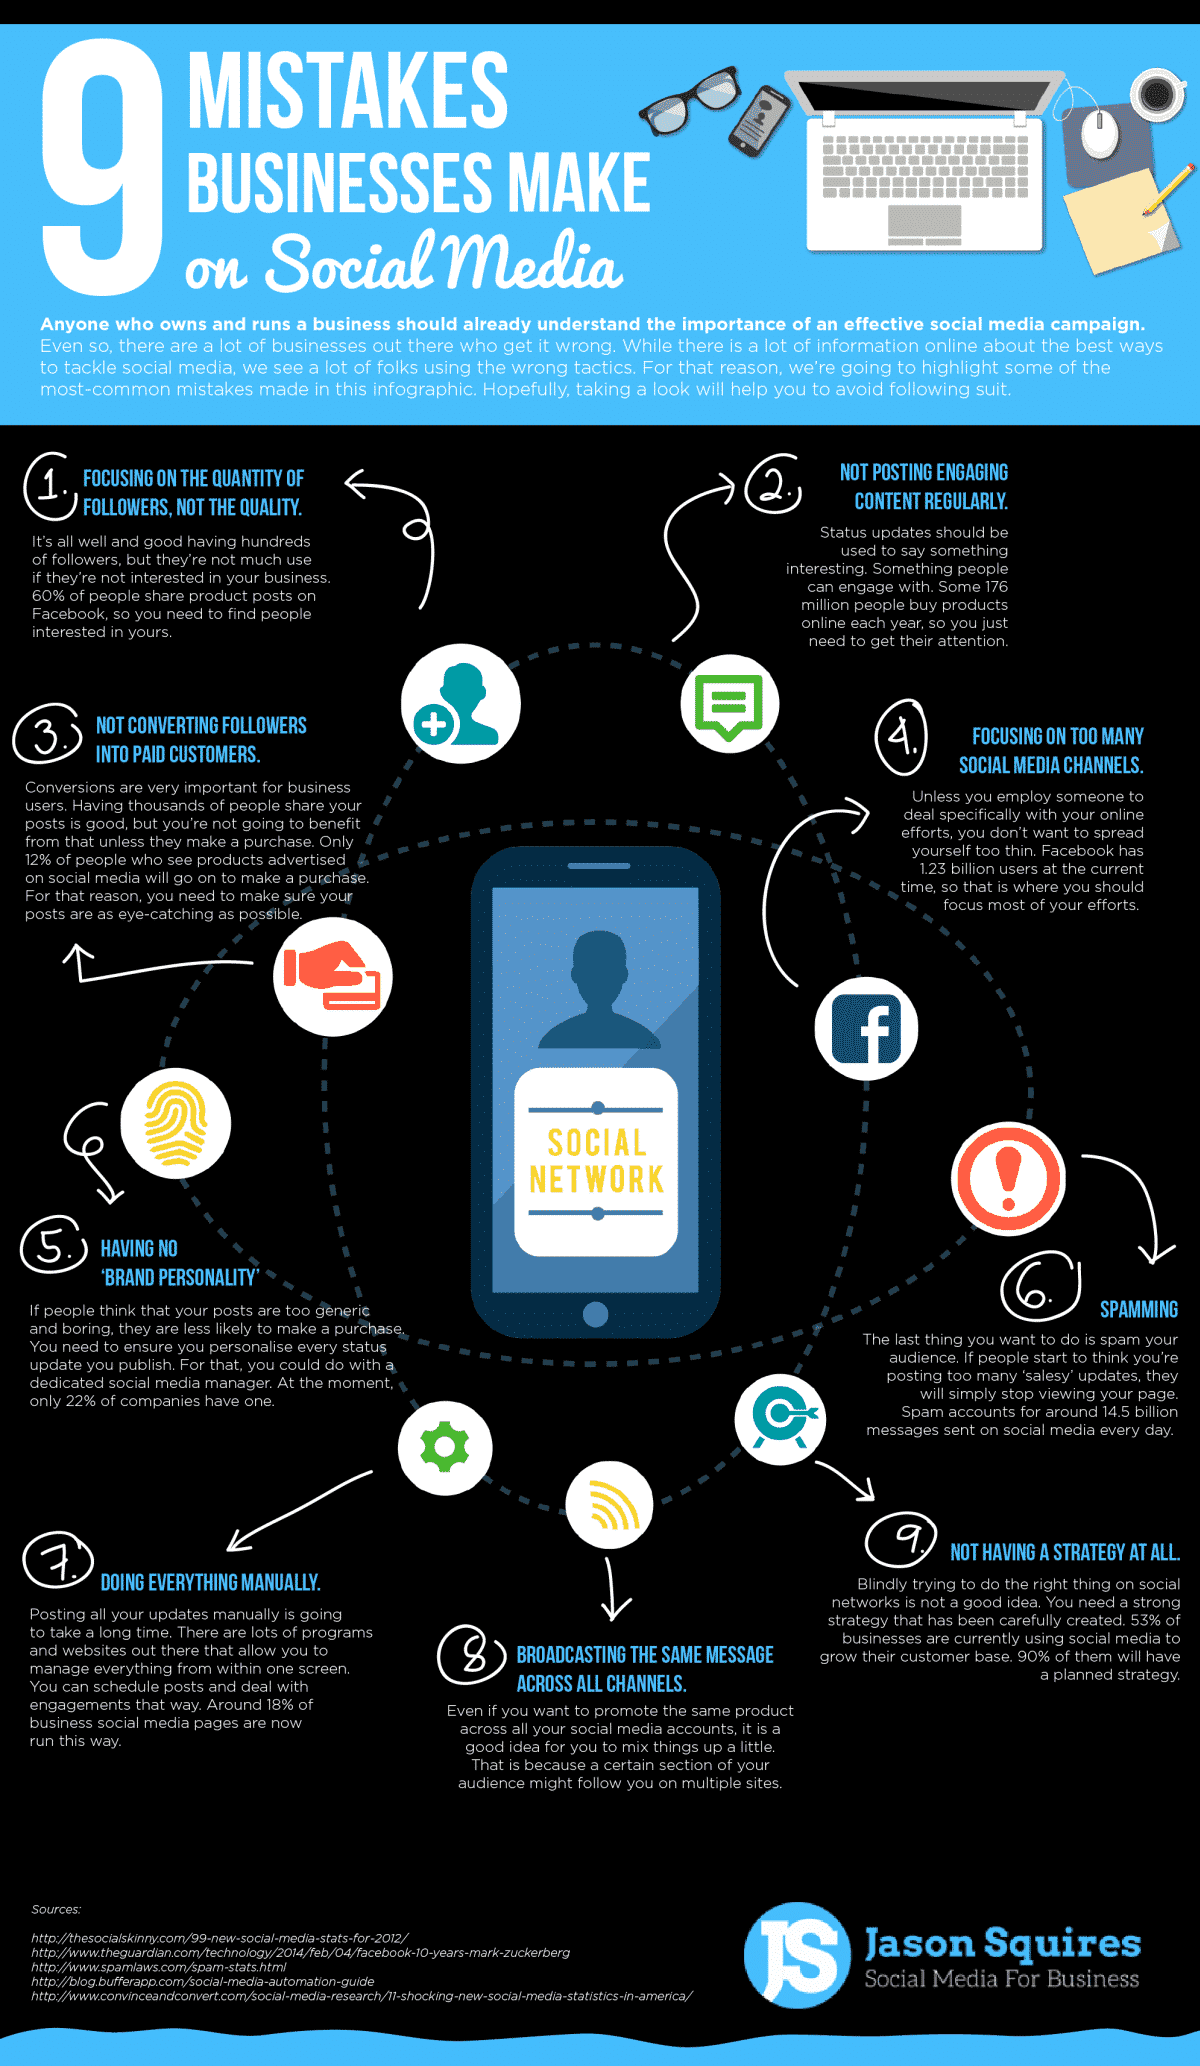 Check out more information on what not to do on social media, with this great infographic.